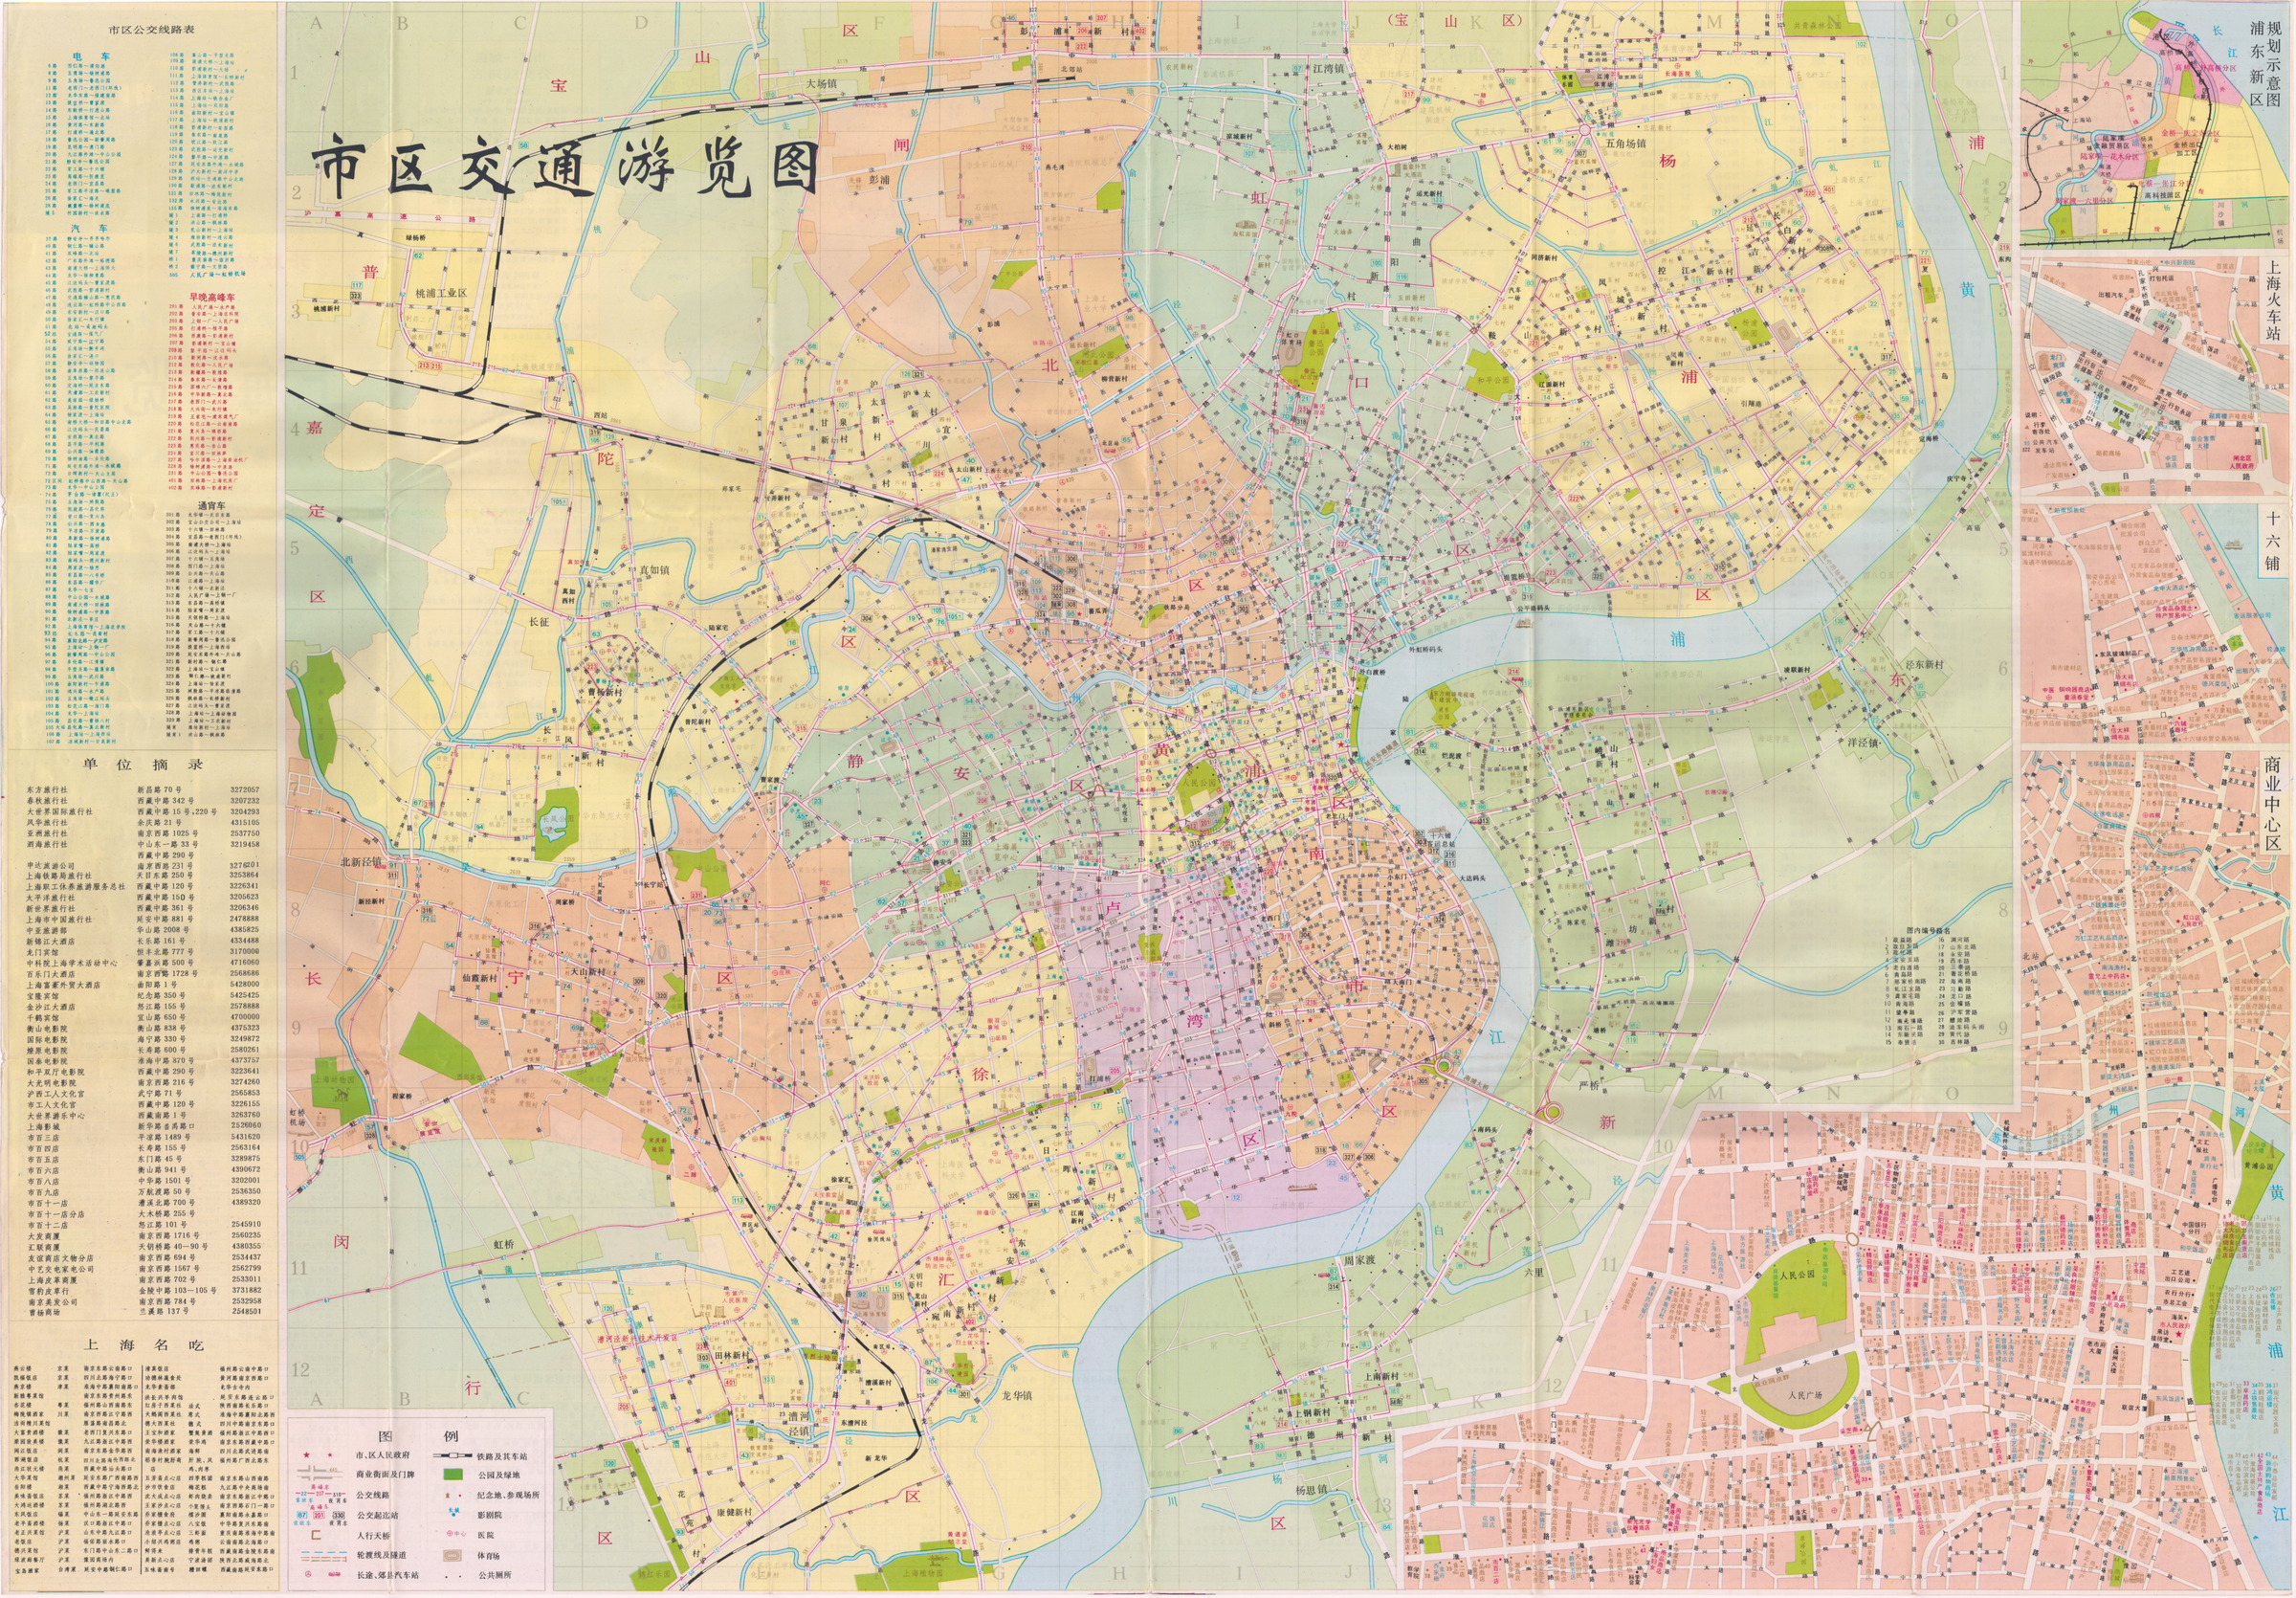 Shanghai in Post1949 Maps Secrets Lies and Urban Icons Virtual